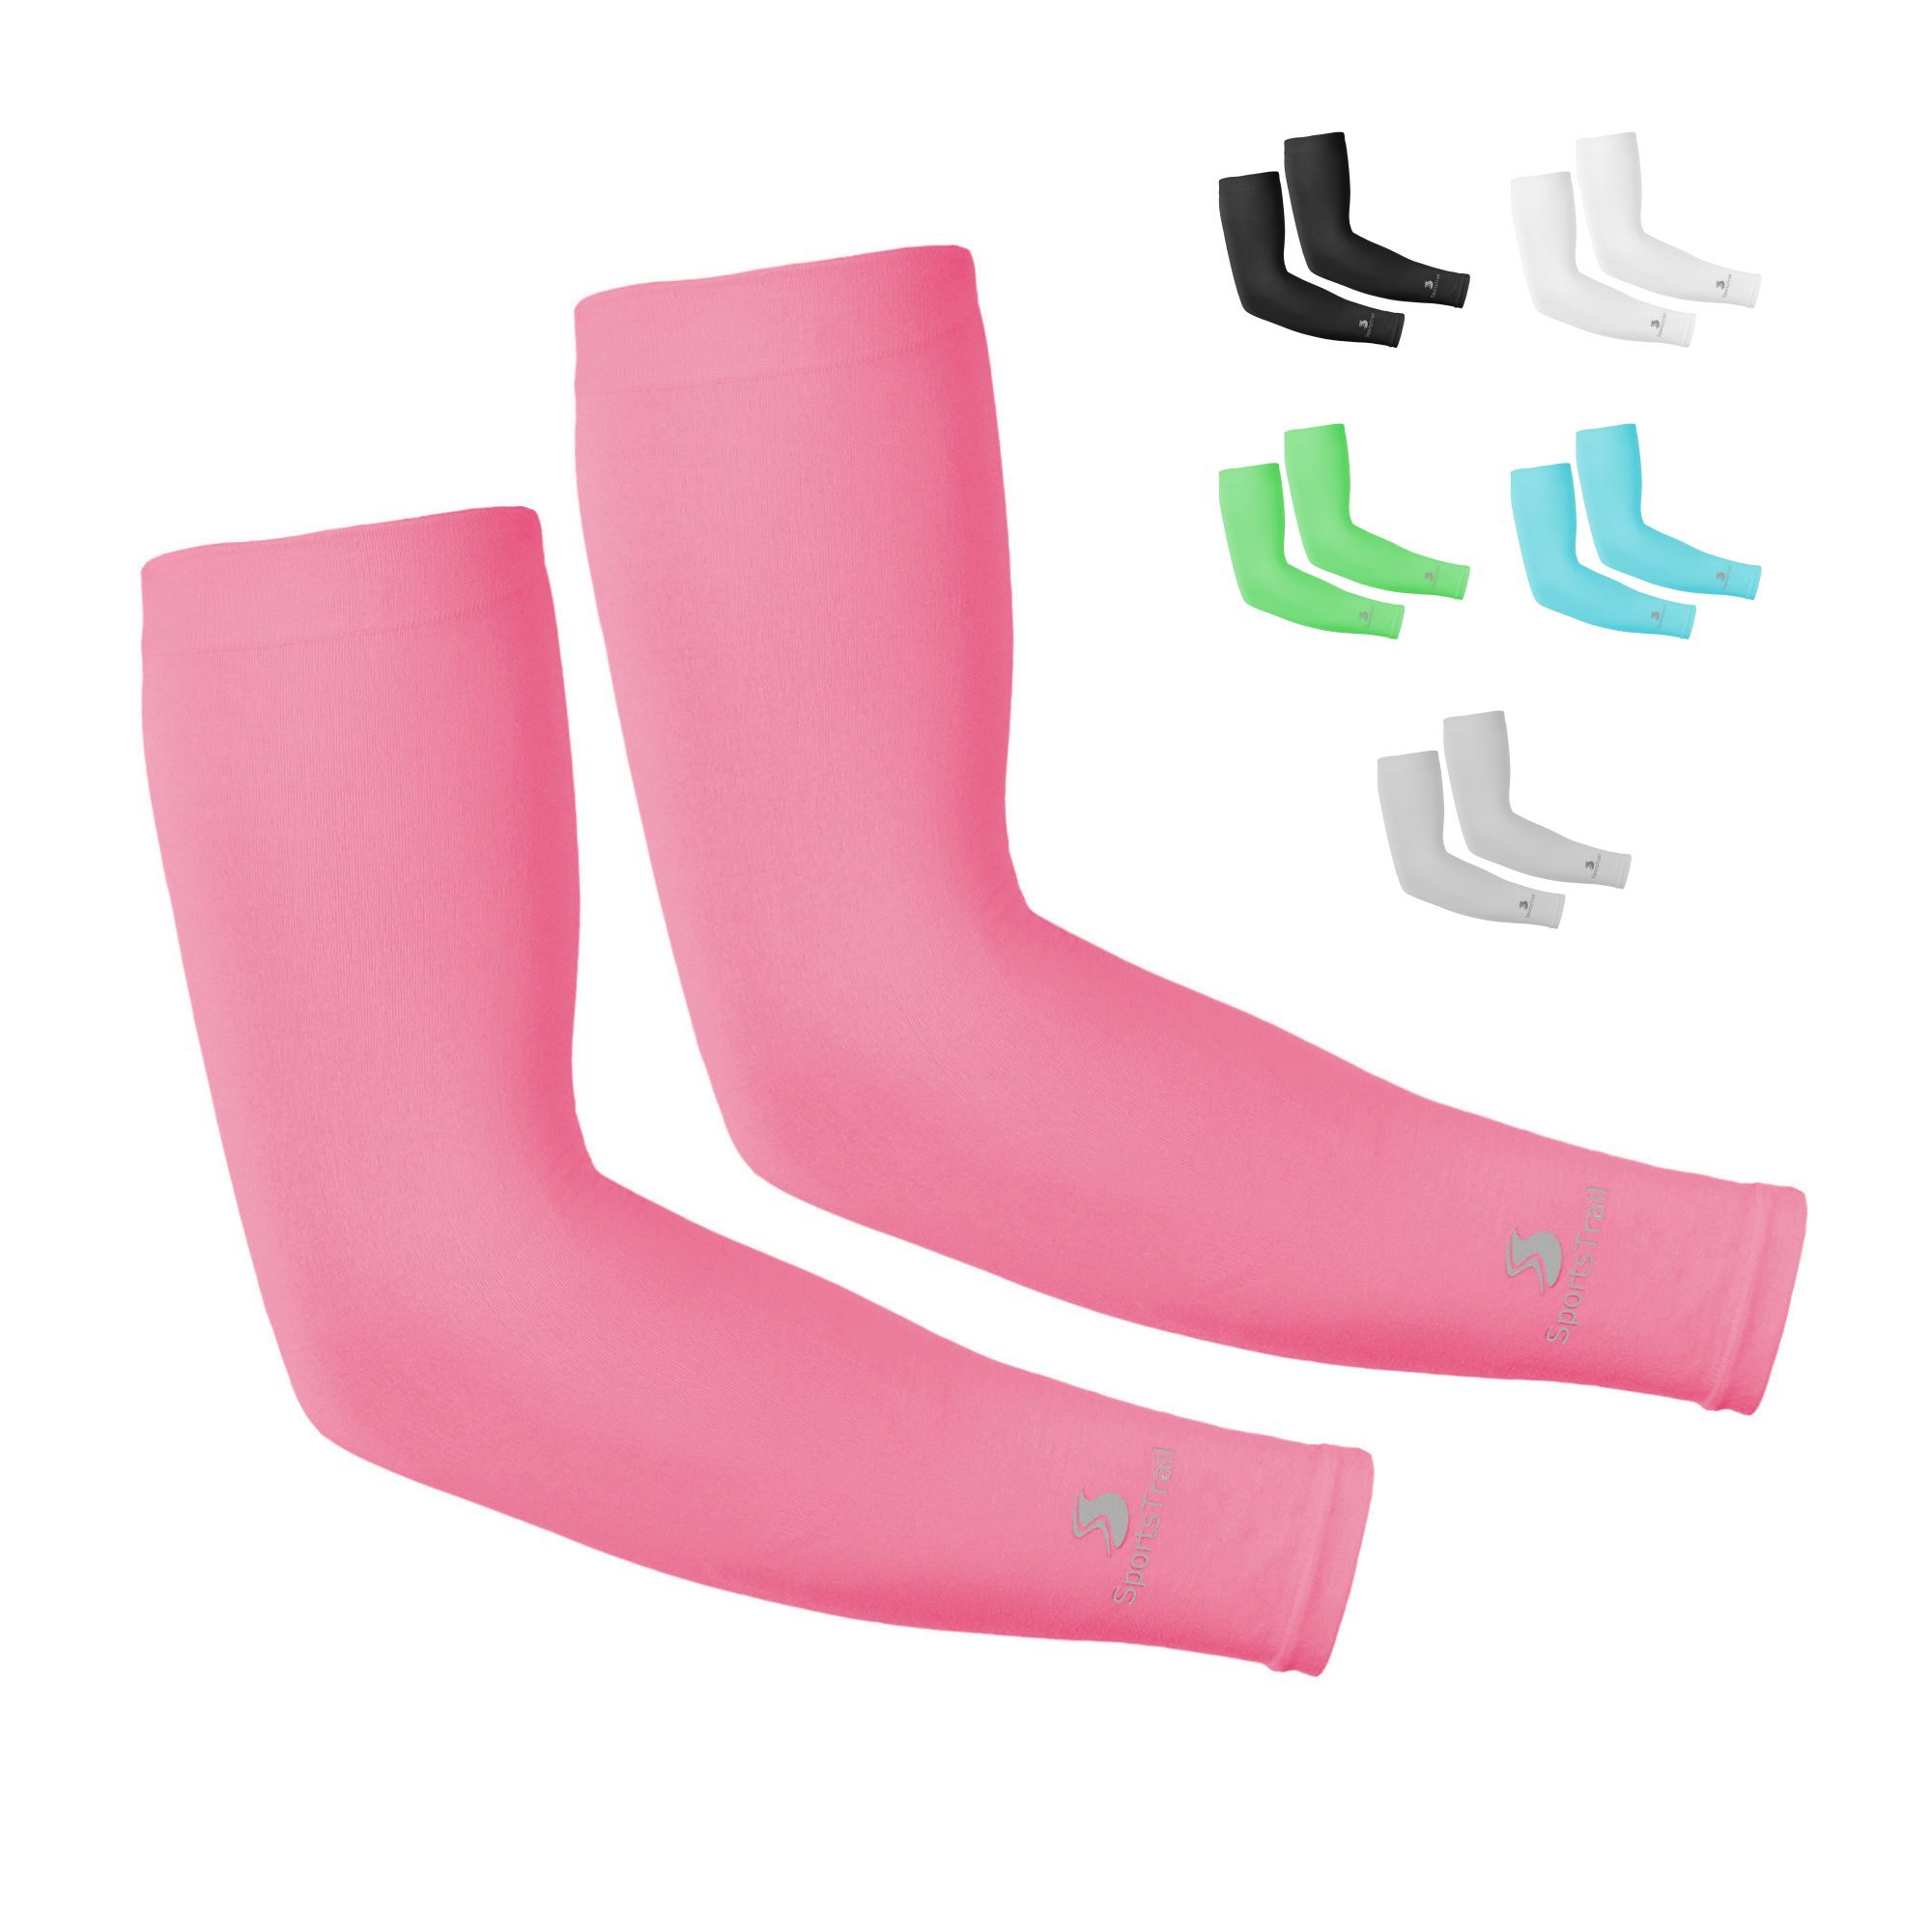 SportsTrail Arm Sleeves for Men & Women, Tatoo Cover up Sleeves to Cover Arms, 1 Pair (Pink)